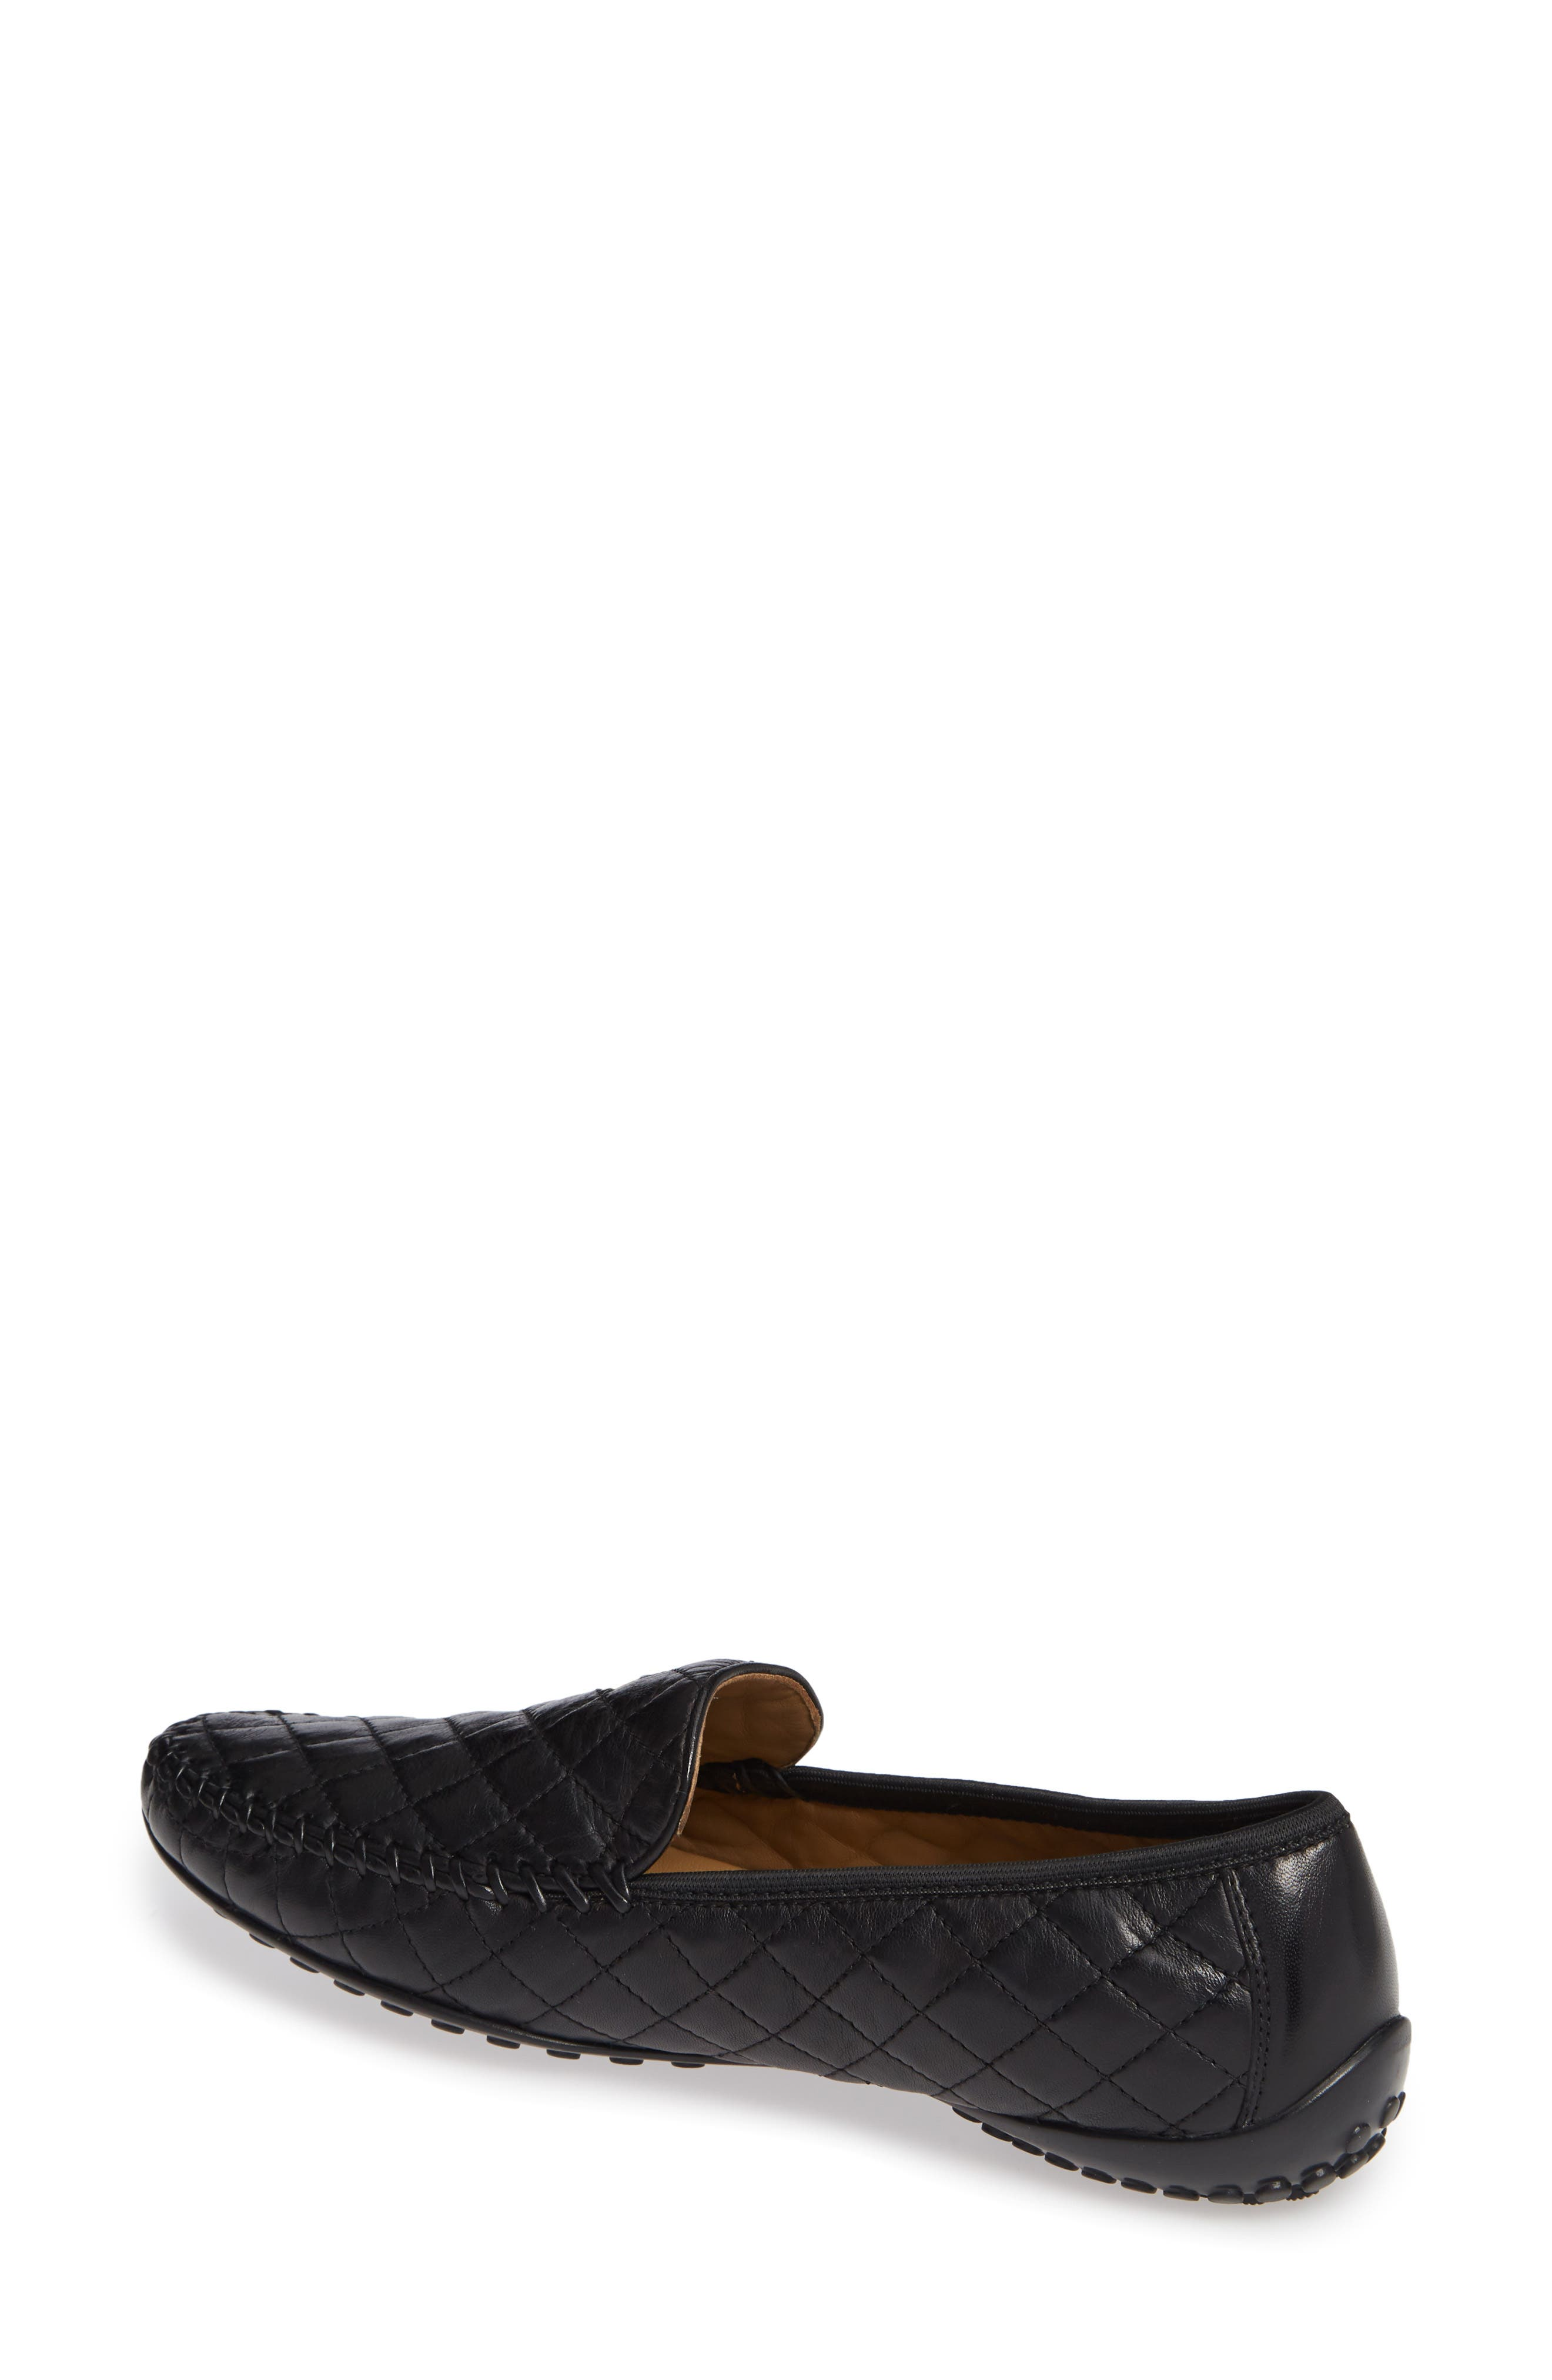 'Quana' Loafer,                             Alternate thumbnail 2, color,                             BLACK